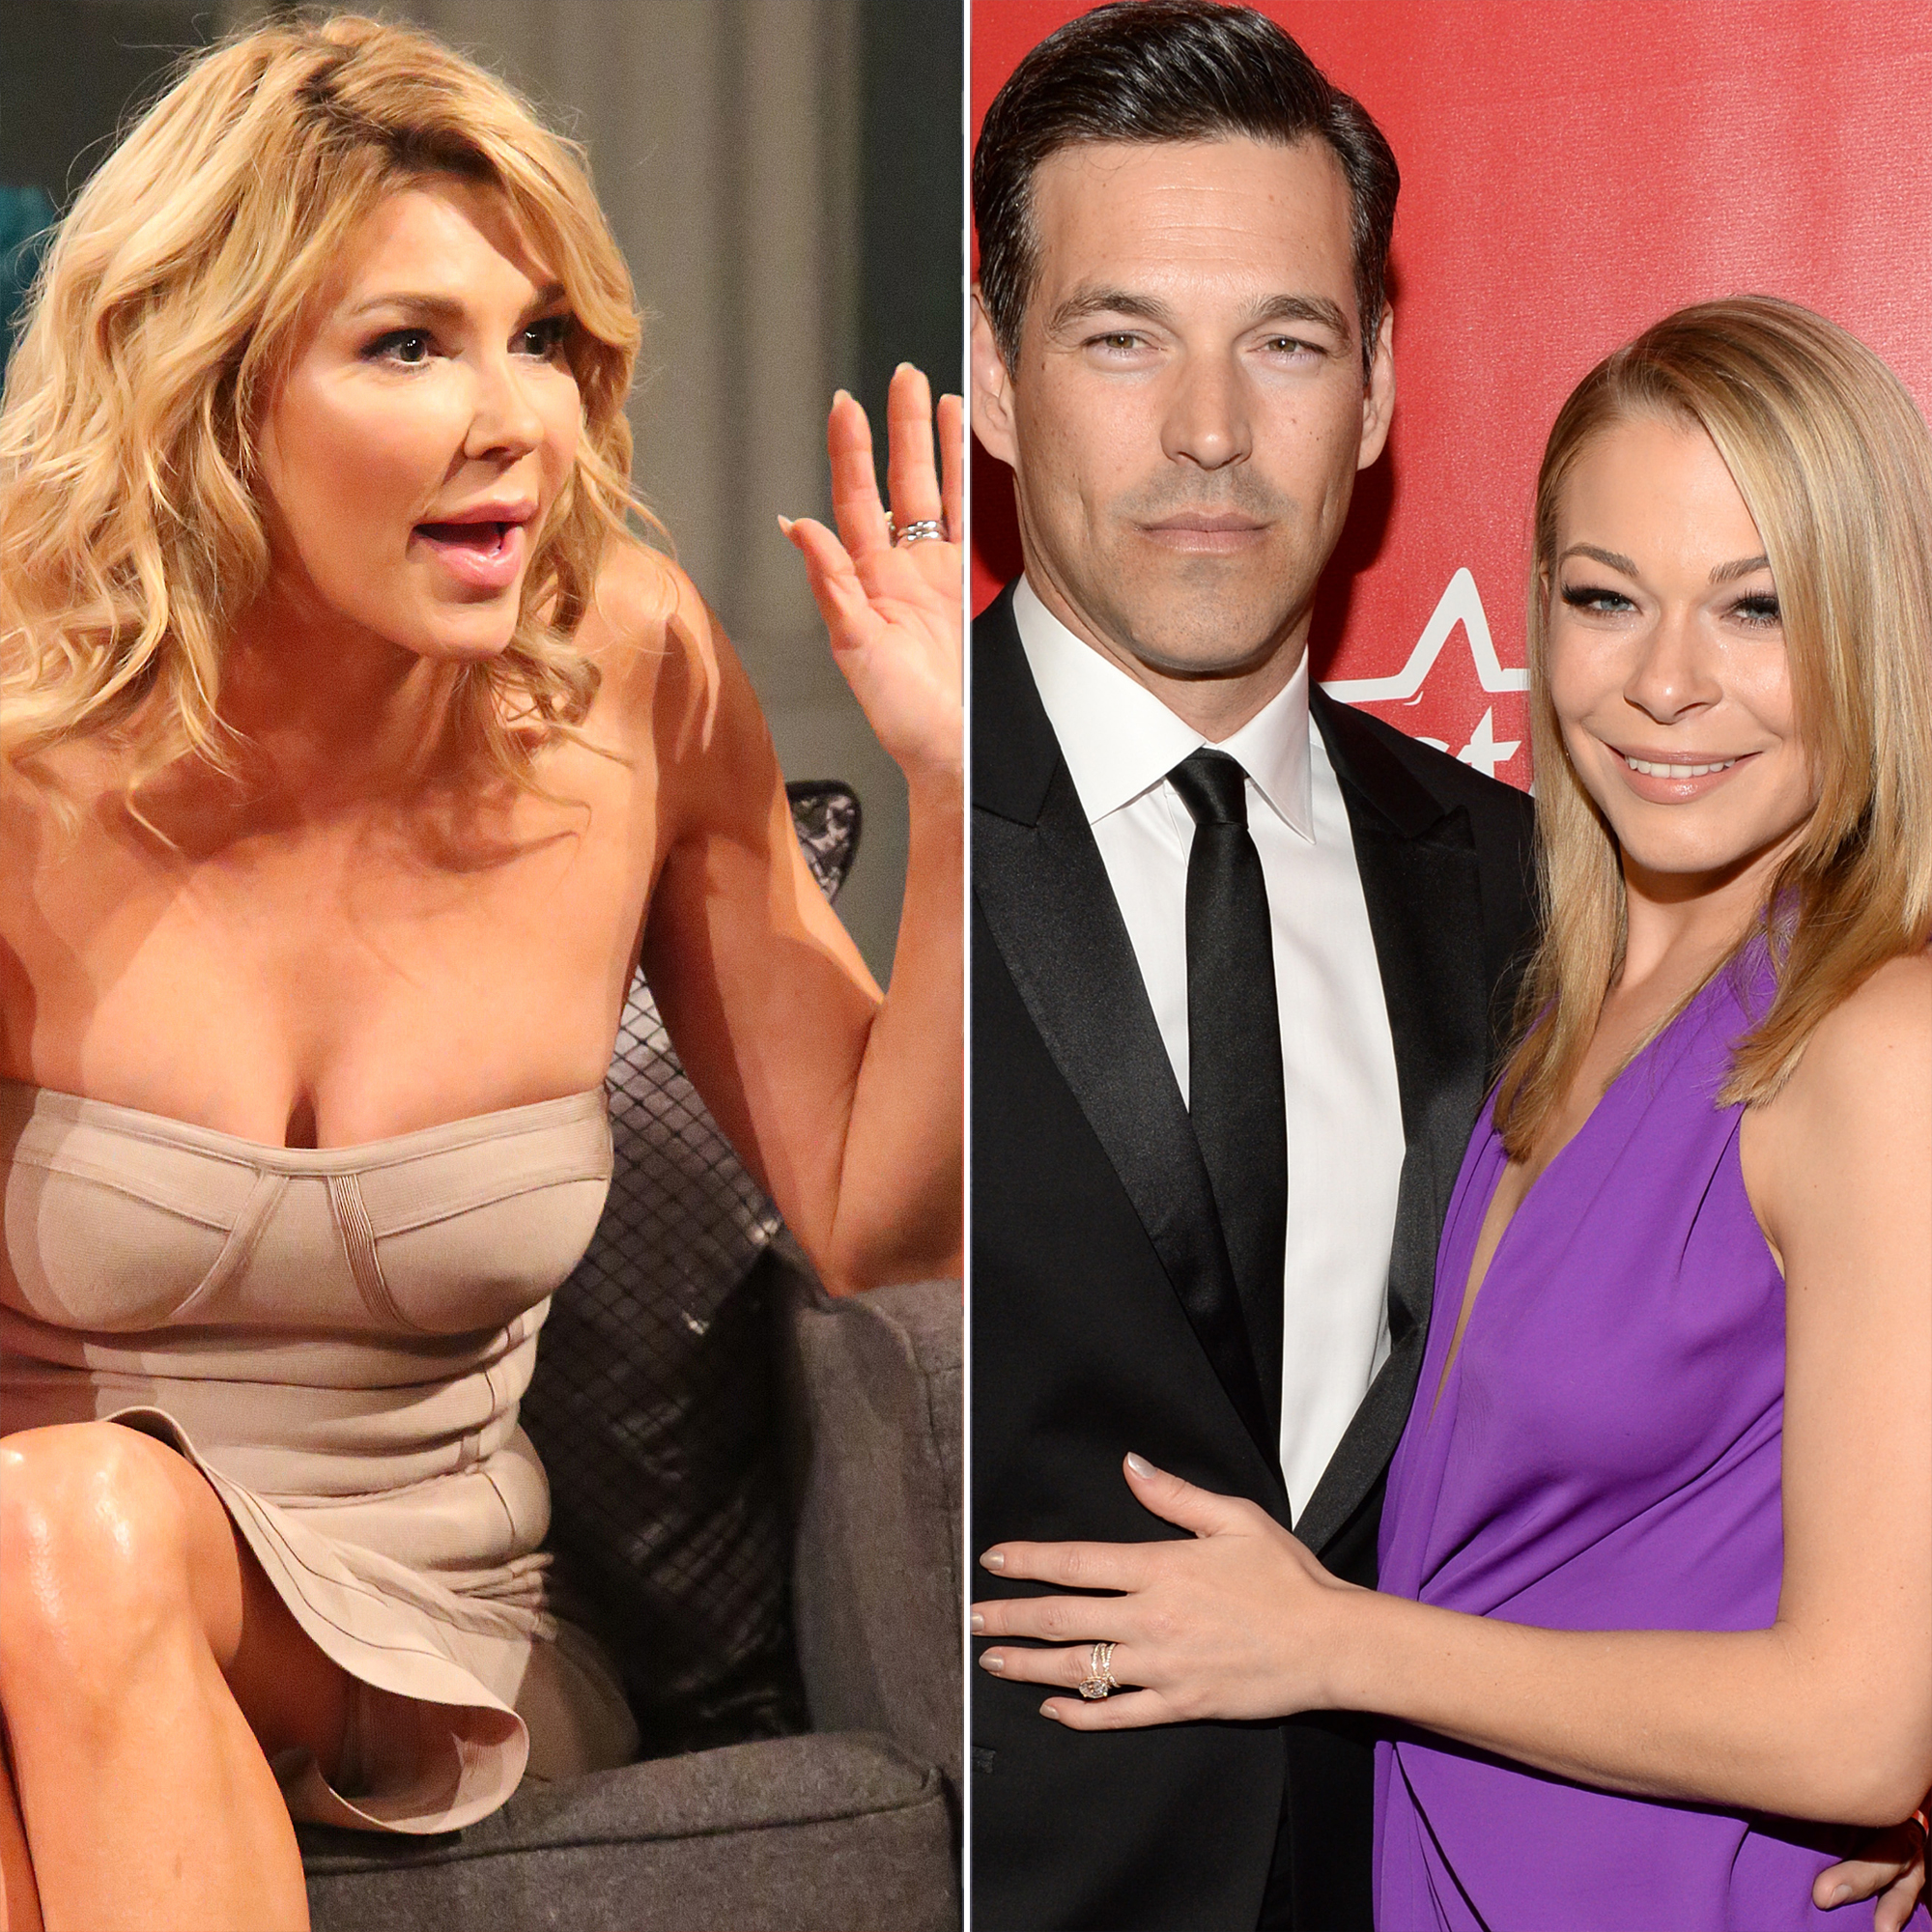 """Revisit Brandi Glanville's Feud With Eddie Cibrian and LeAnn Rimes - Us Weekly broke the news that Rimes was having an affair with Cibrian after meeting on the set of the Lifetime movie Northern Lights . The """"Can't Fight the Moonlight"""" singer was married to former backup dancer Dean Sheremet at the time, while the Sunset Beach alum was wed to Glanville."""